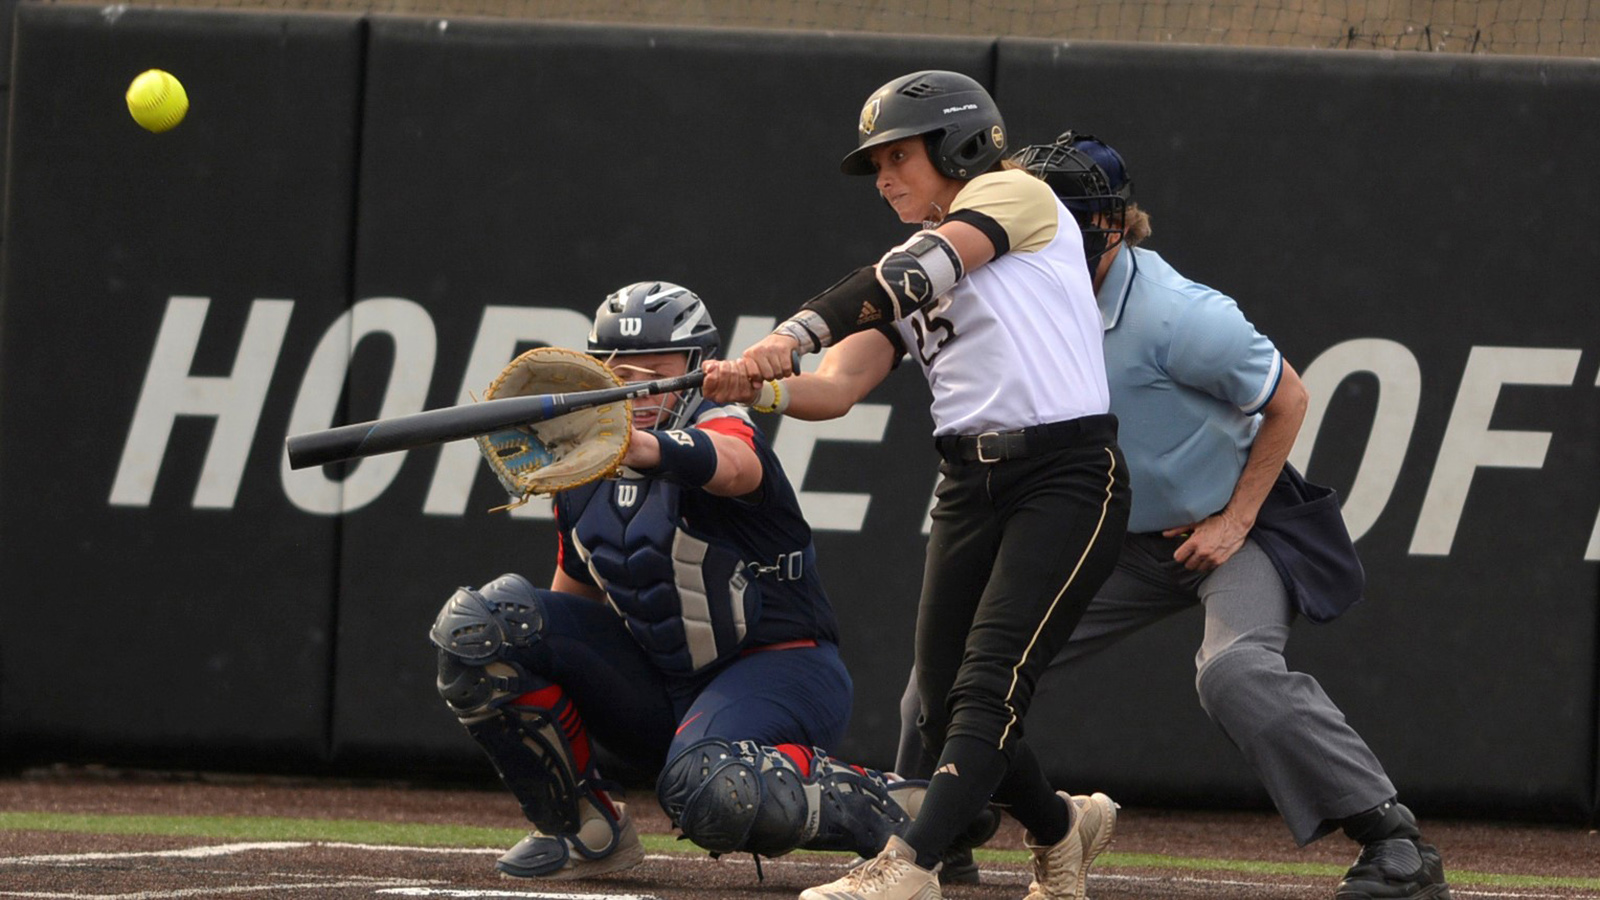 Emporia State Softball Wraps Up Home Schedule This Weekend Emporia